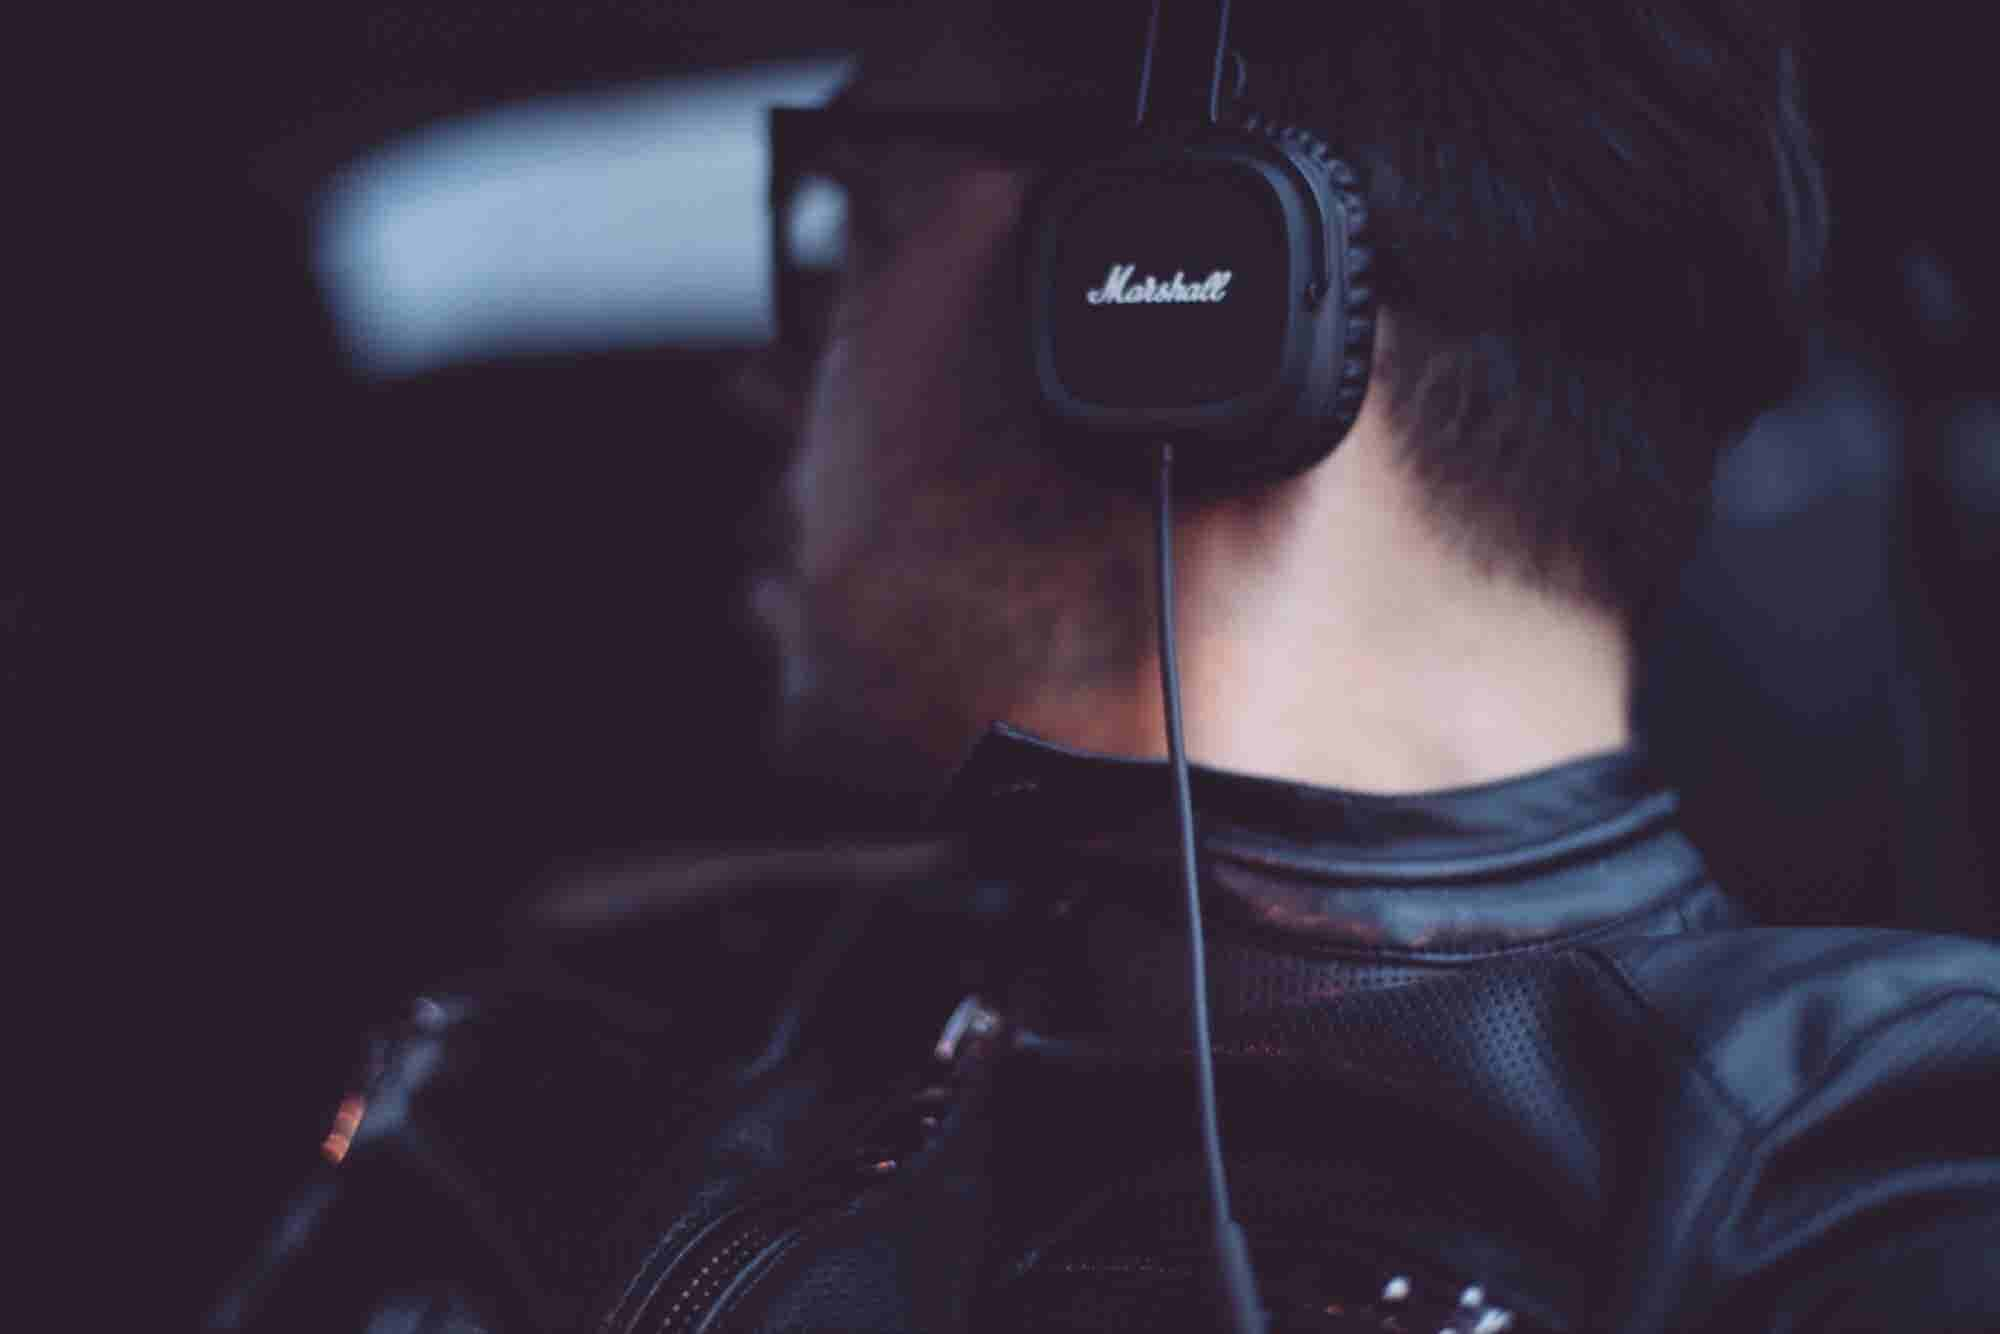 Early Music Streaming Service Grooveshark Shuts Down to Settle Infringement